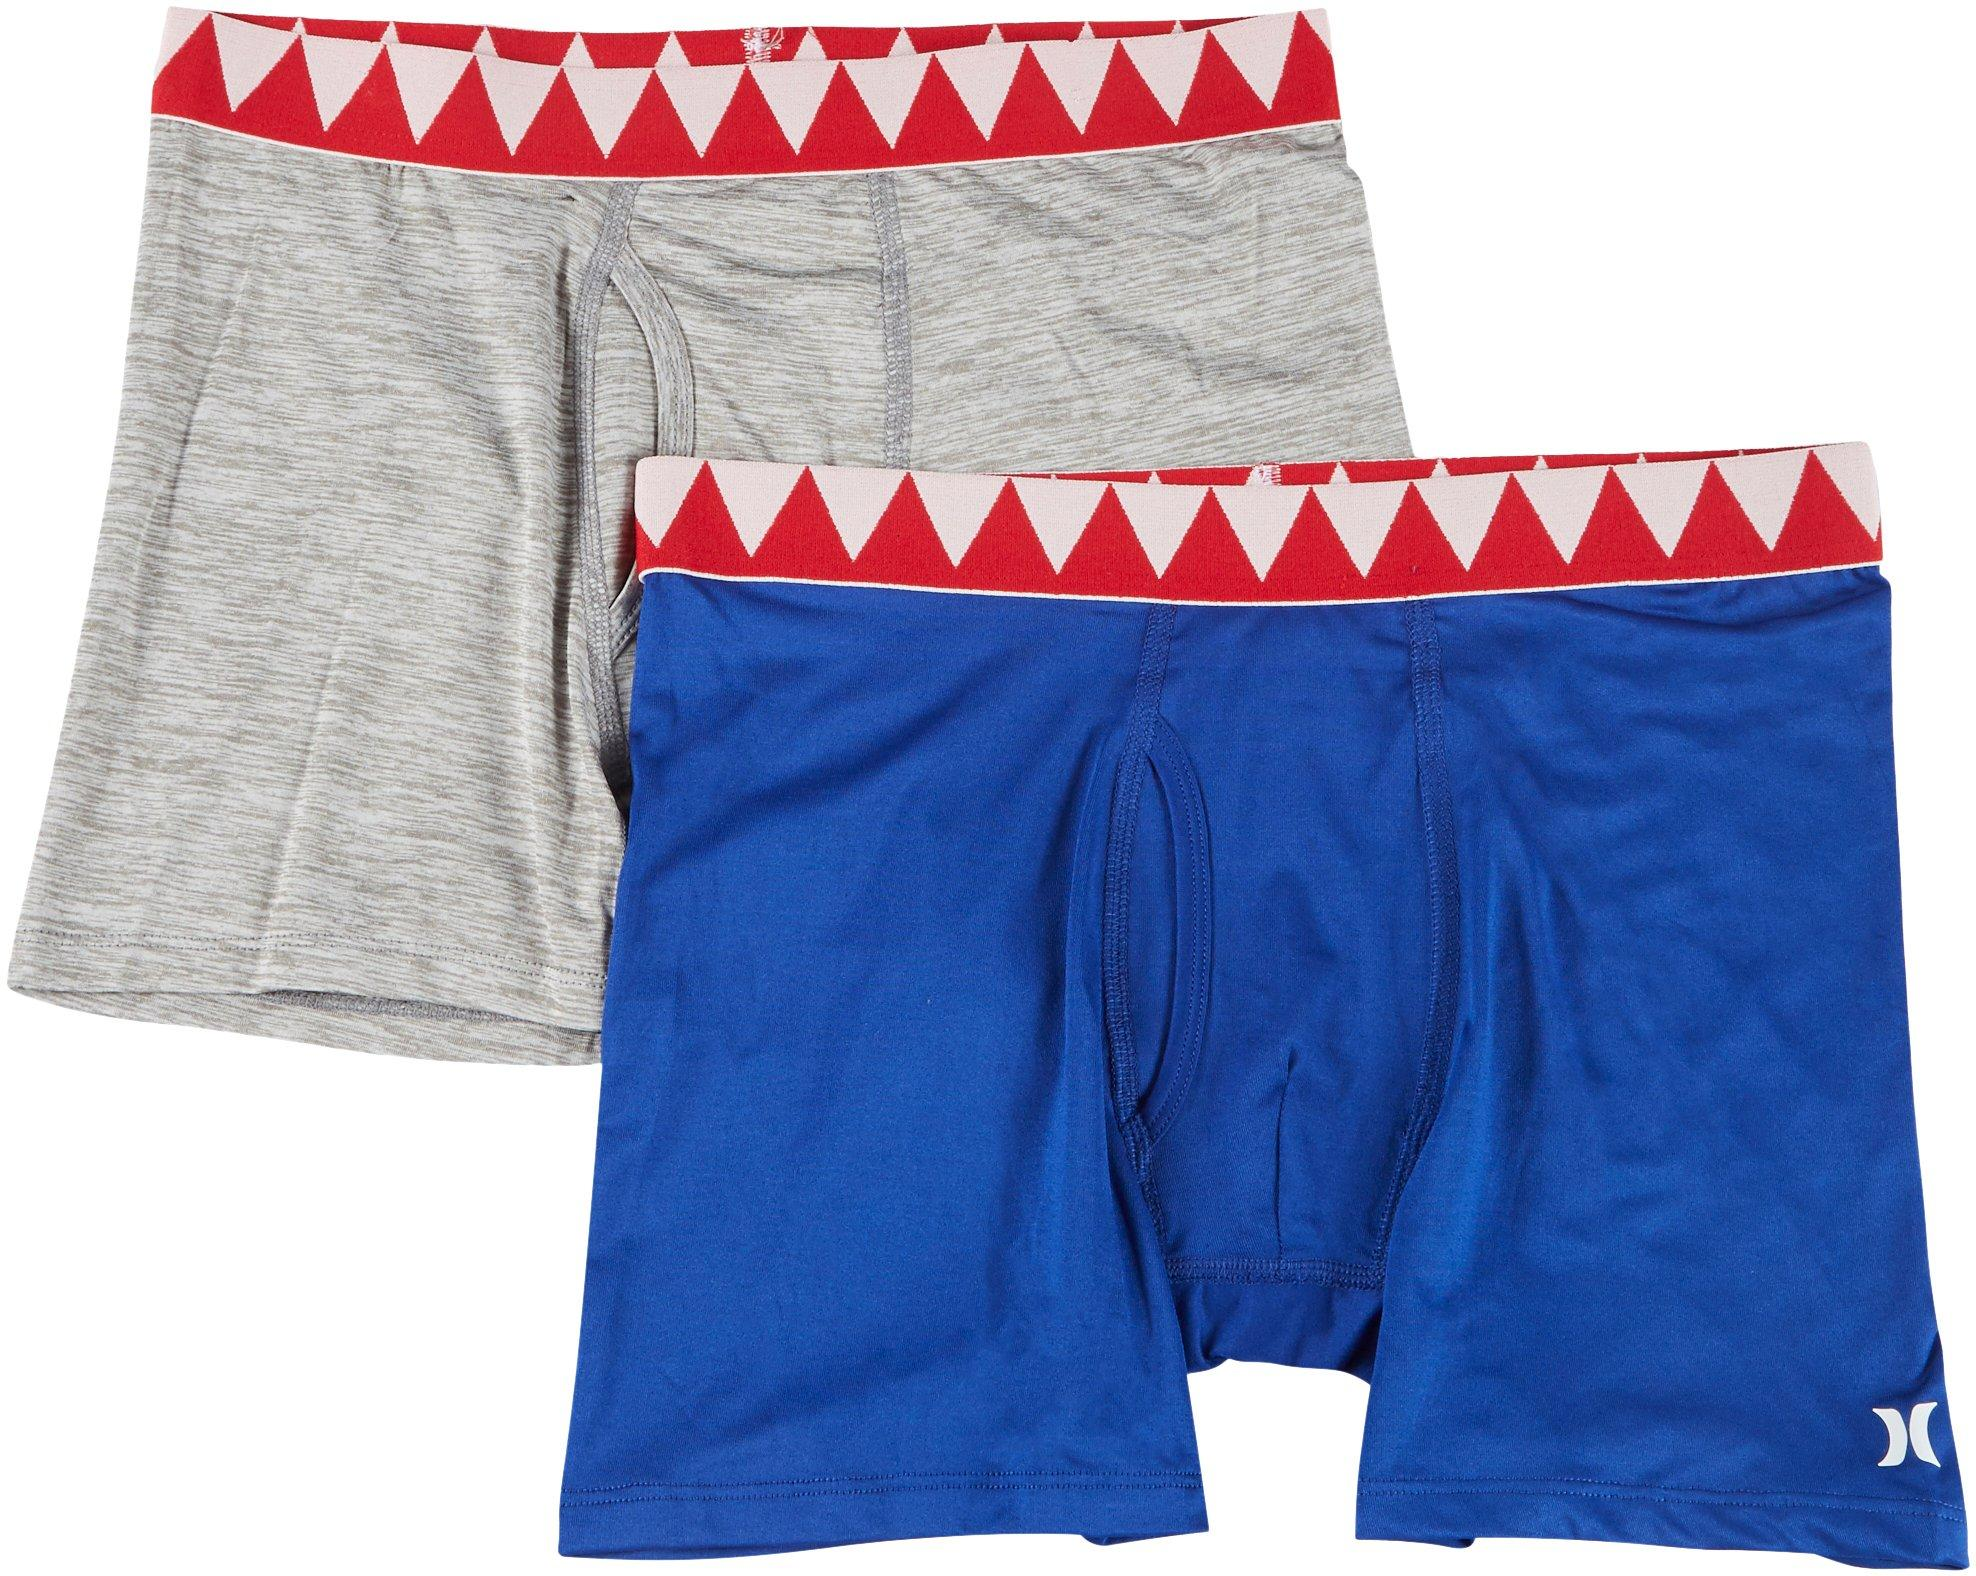 Hurley Boys Classic Boxer Briefs 2-Pack